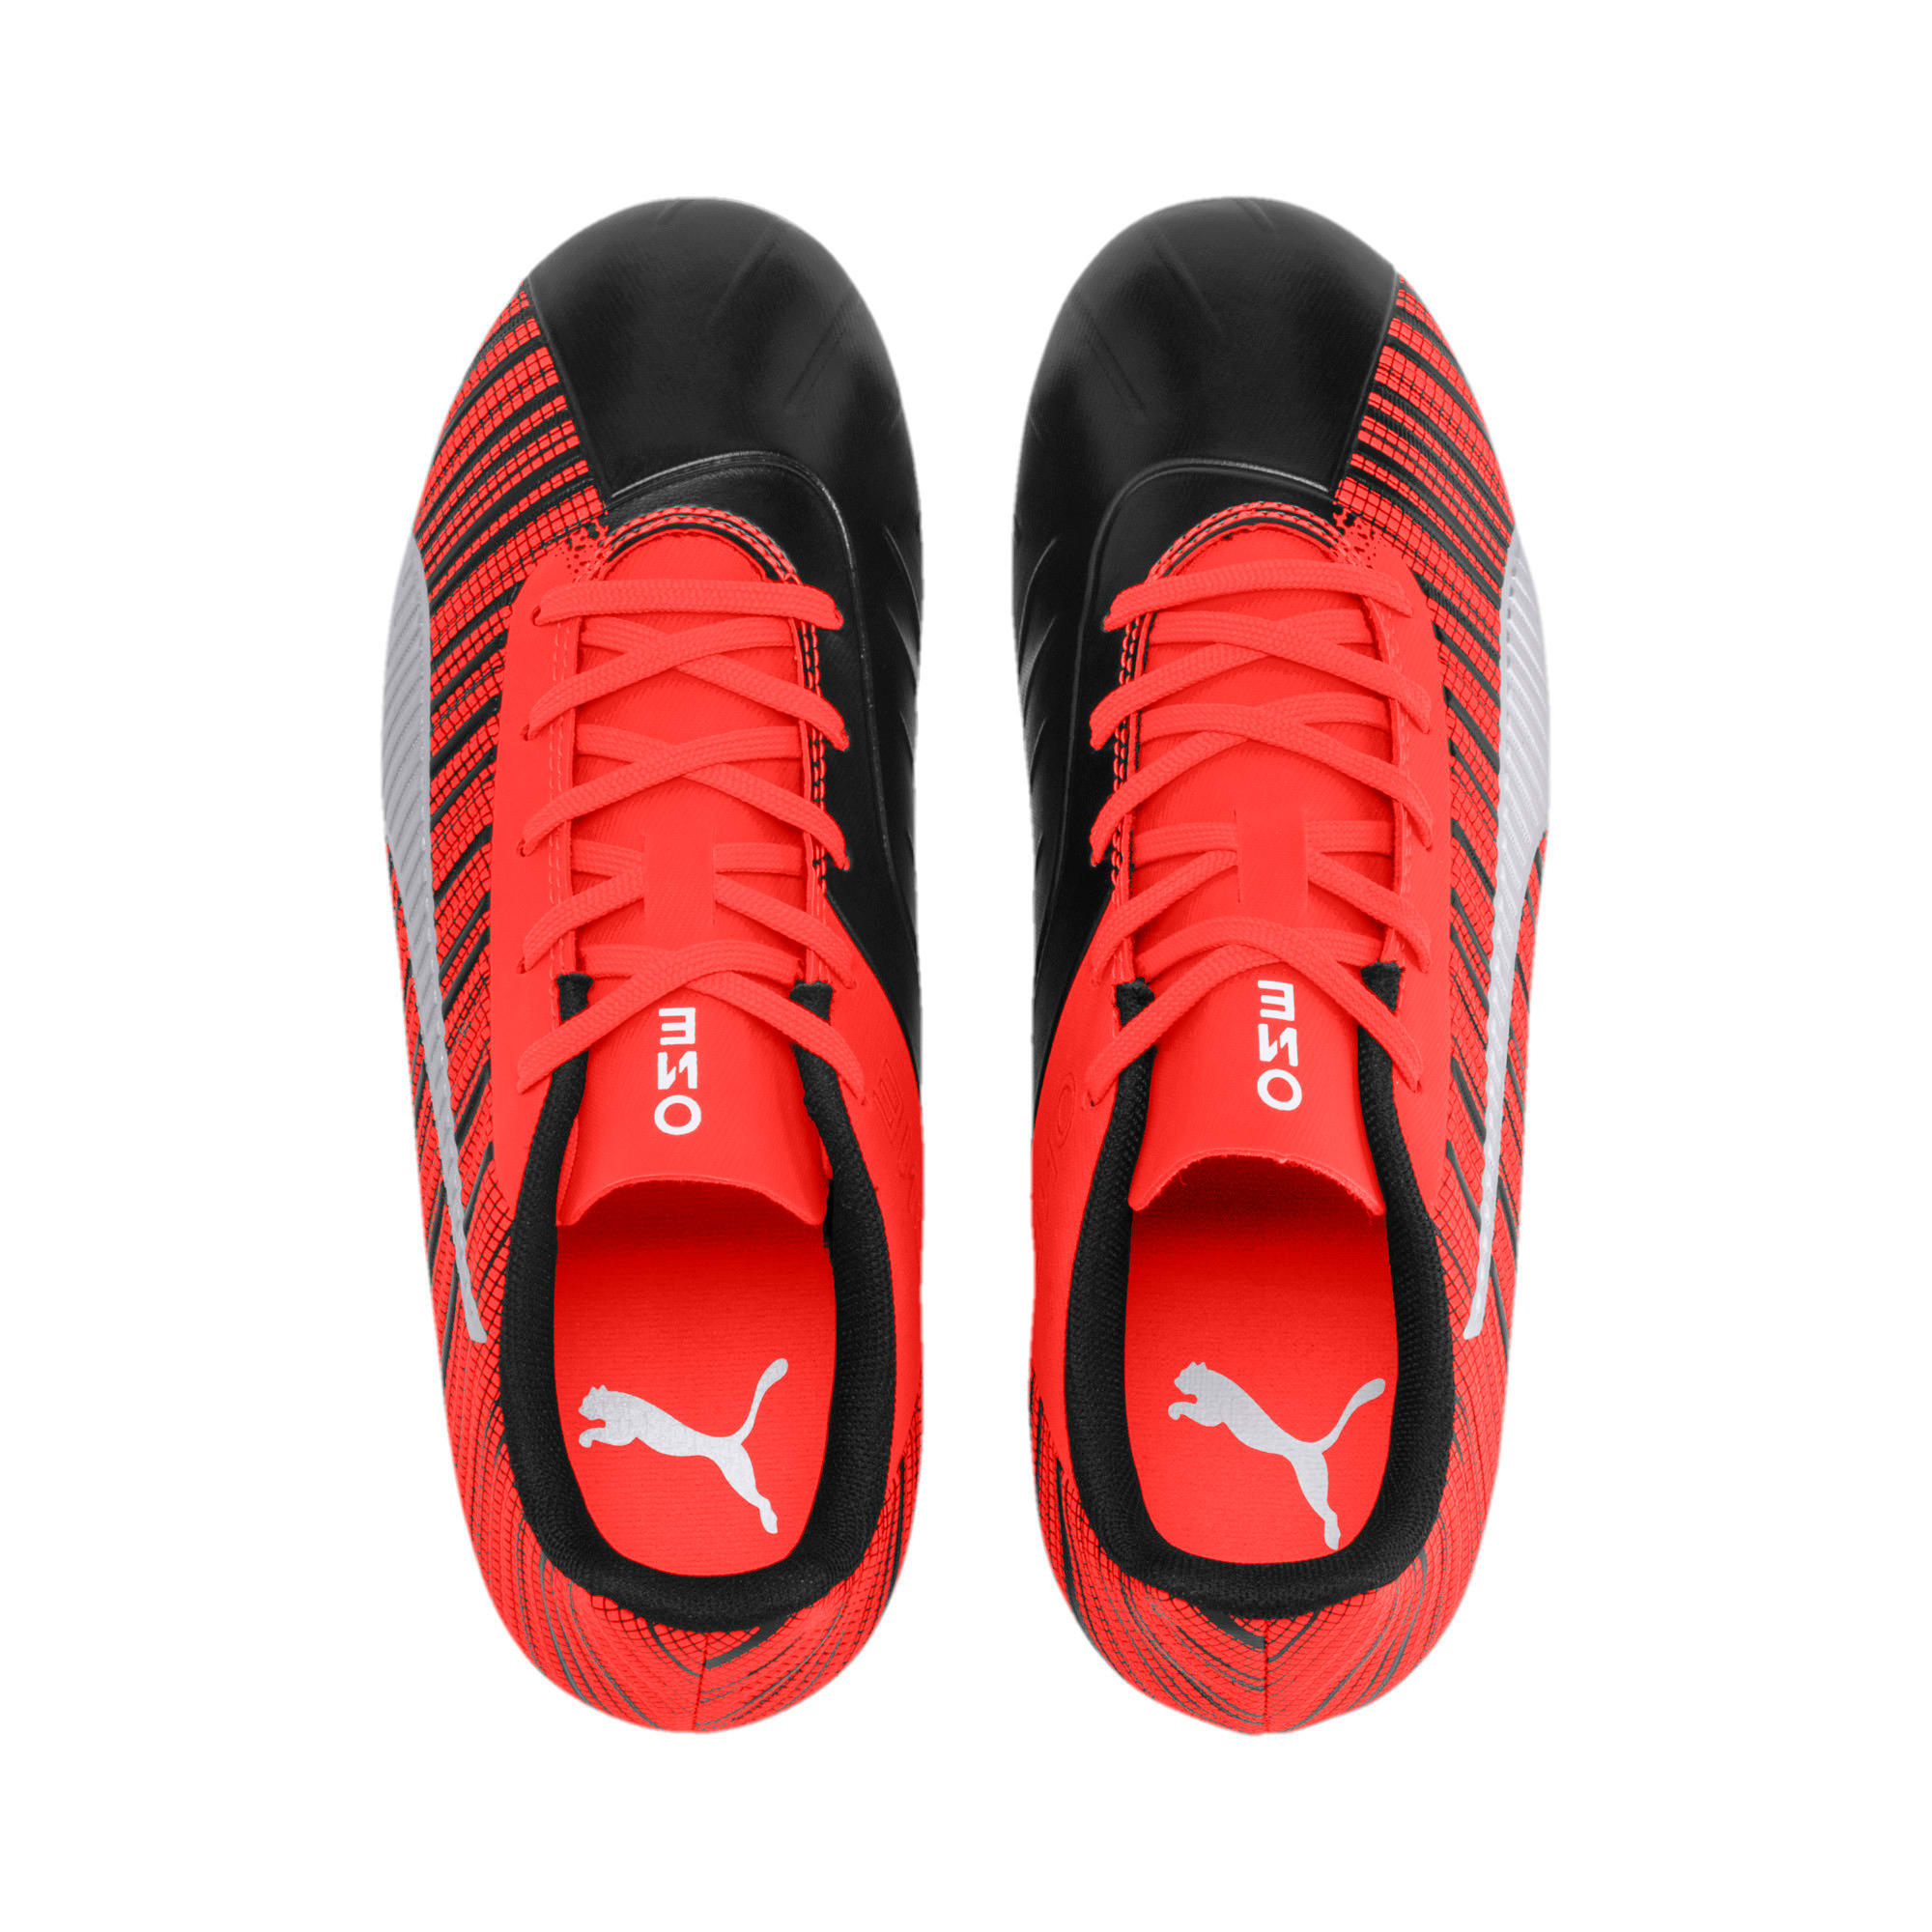 Thumbnail 6 of PUMA ONE 5.4 IT voetbalschoenen voor jongeren, Black-Nrgy Red-Aged Silver, medium